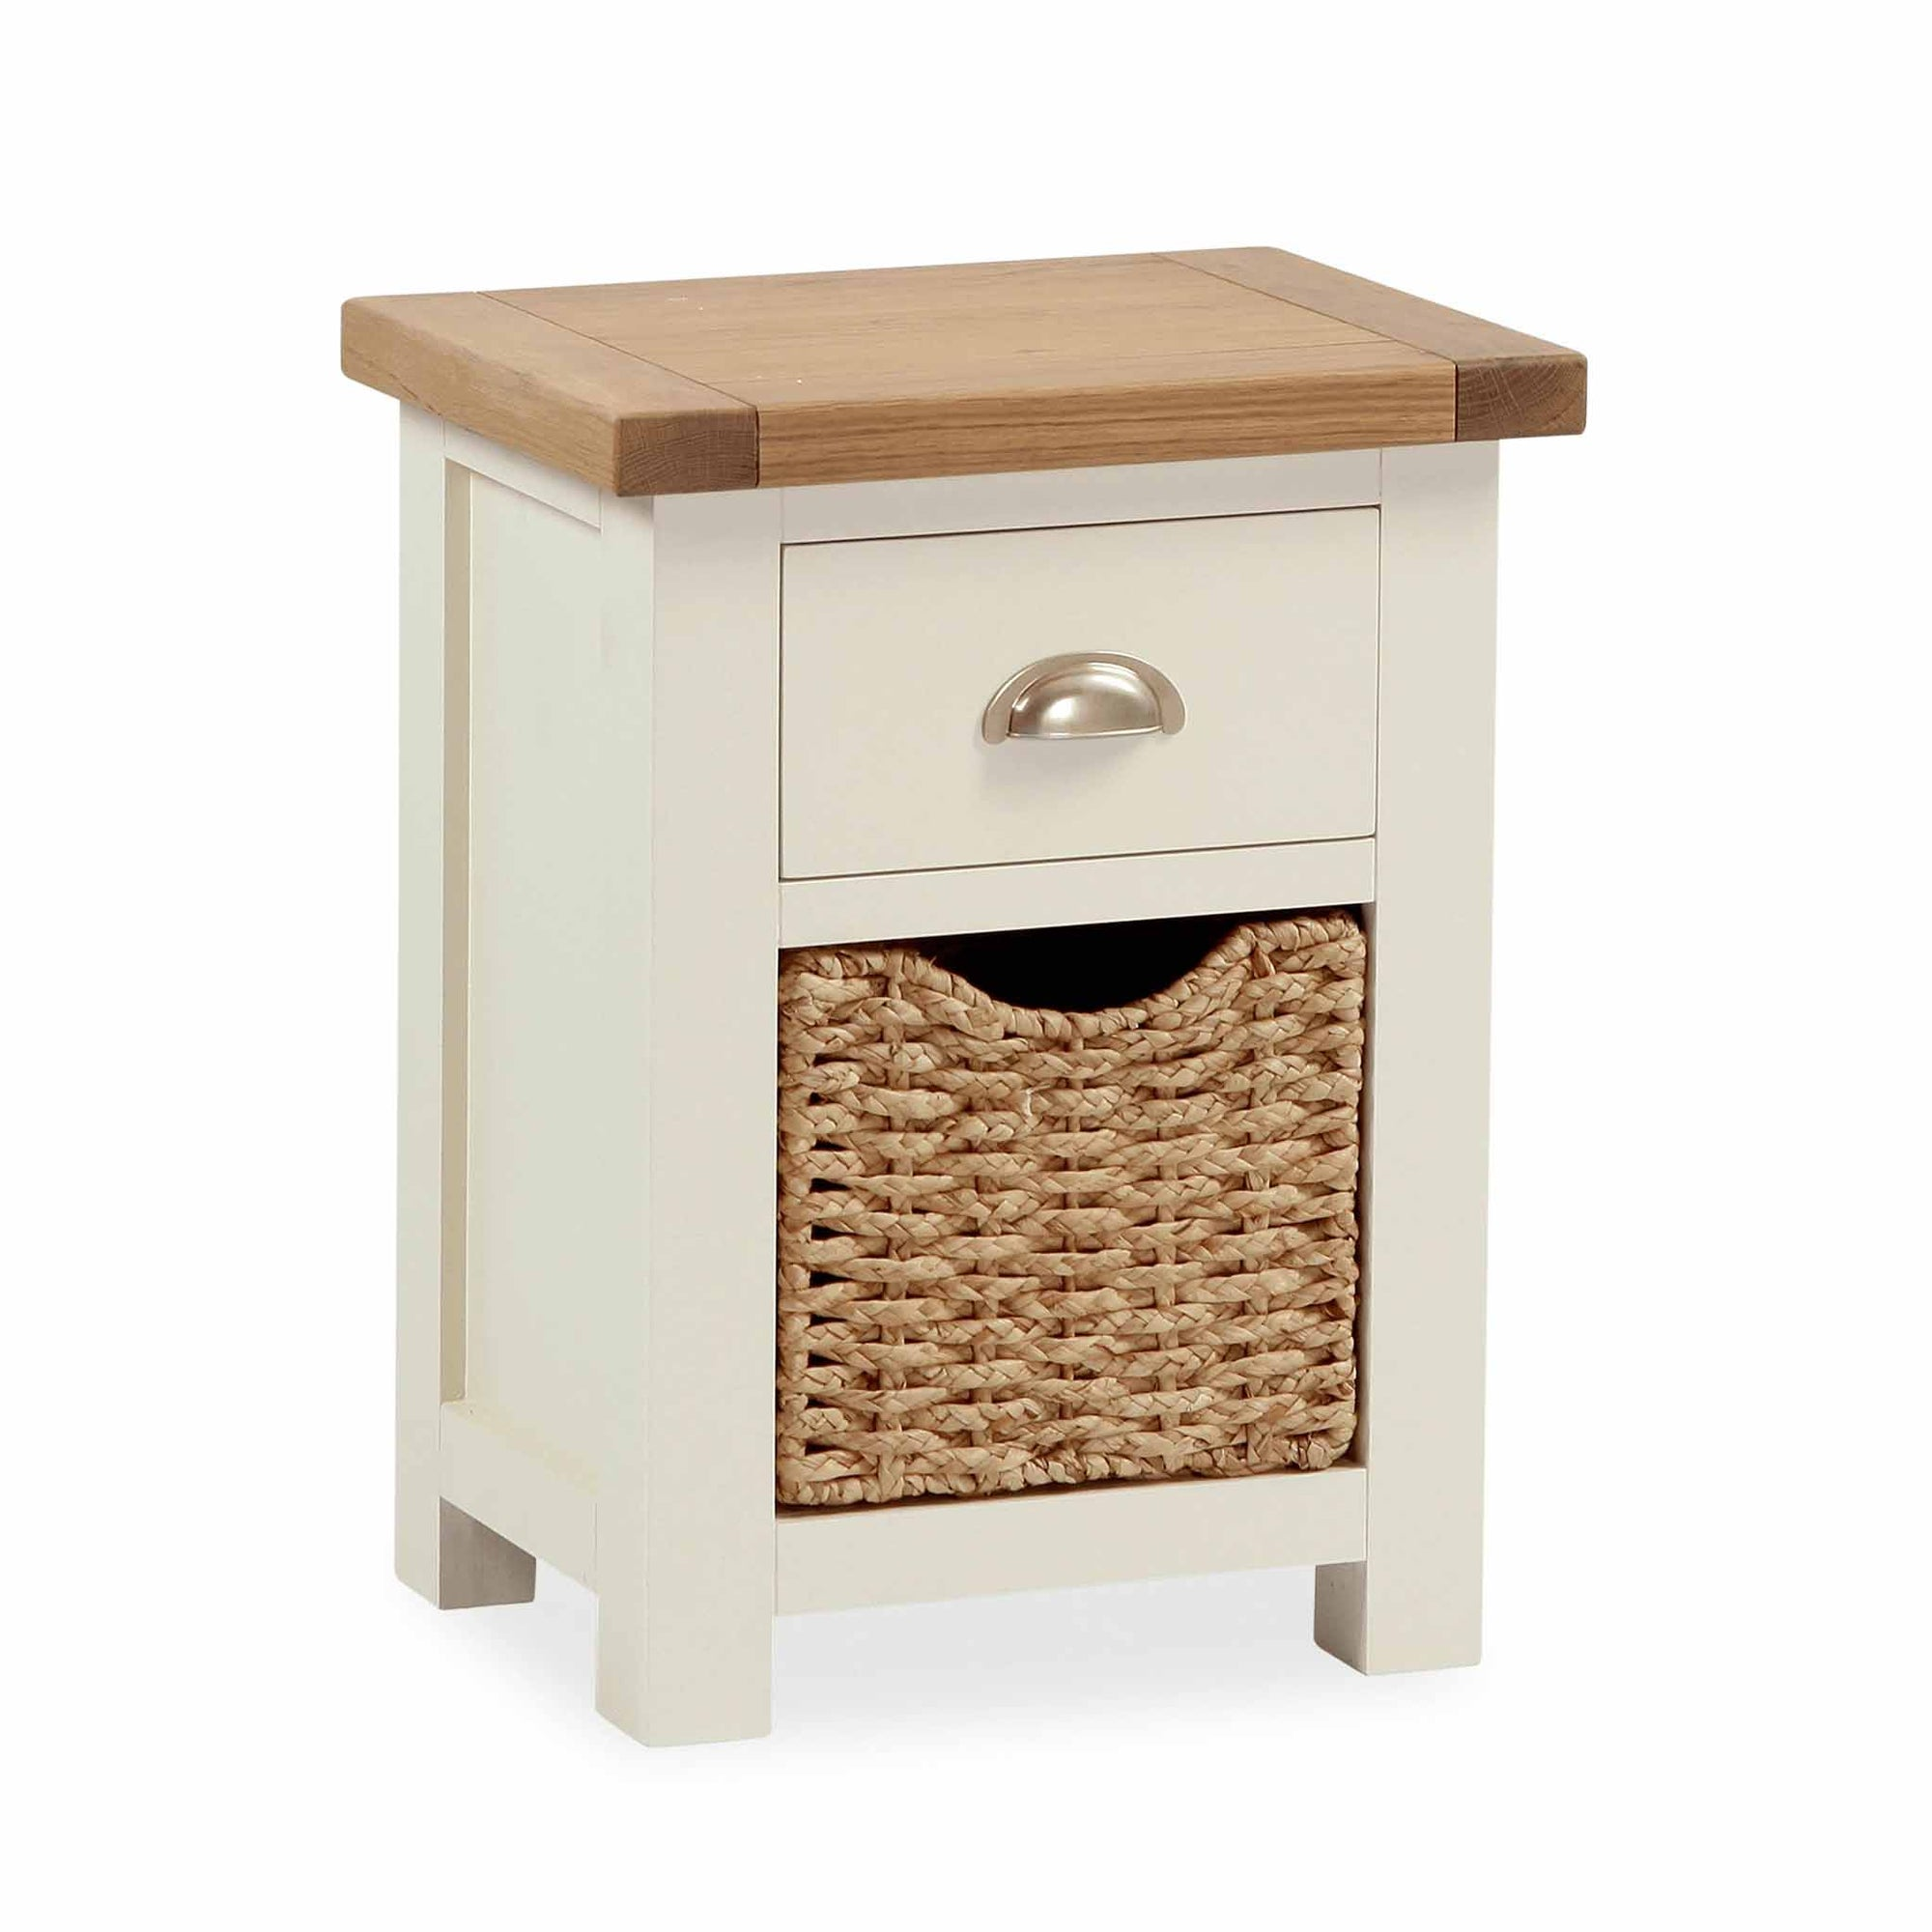 The Daymer Cream Painted Small Oak Top Bedside Table with Basket from Roseland Furniture